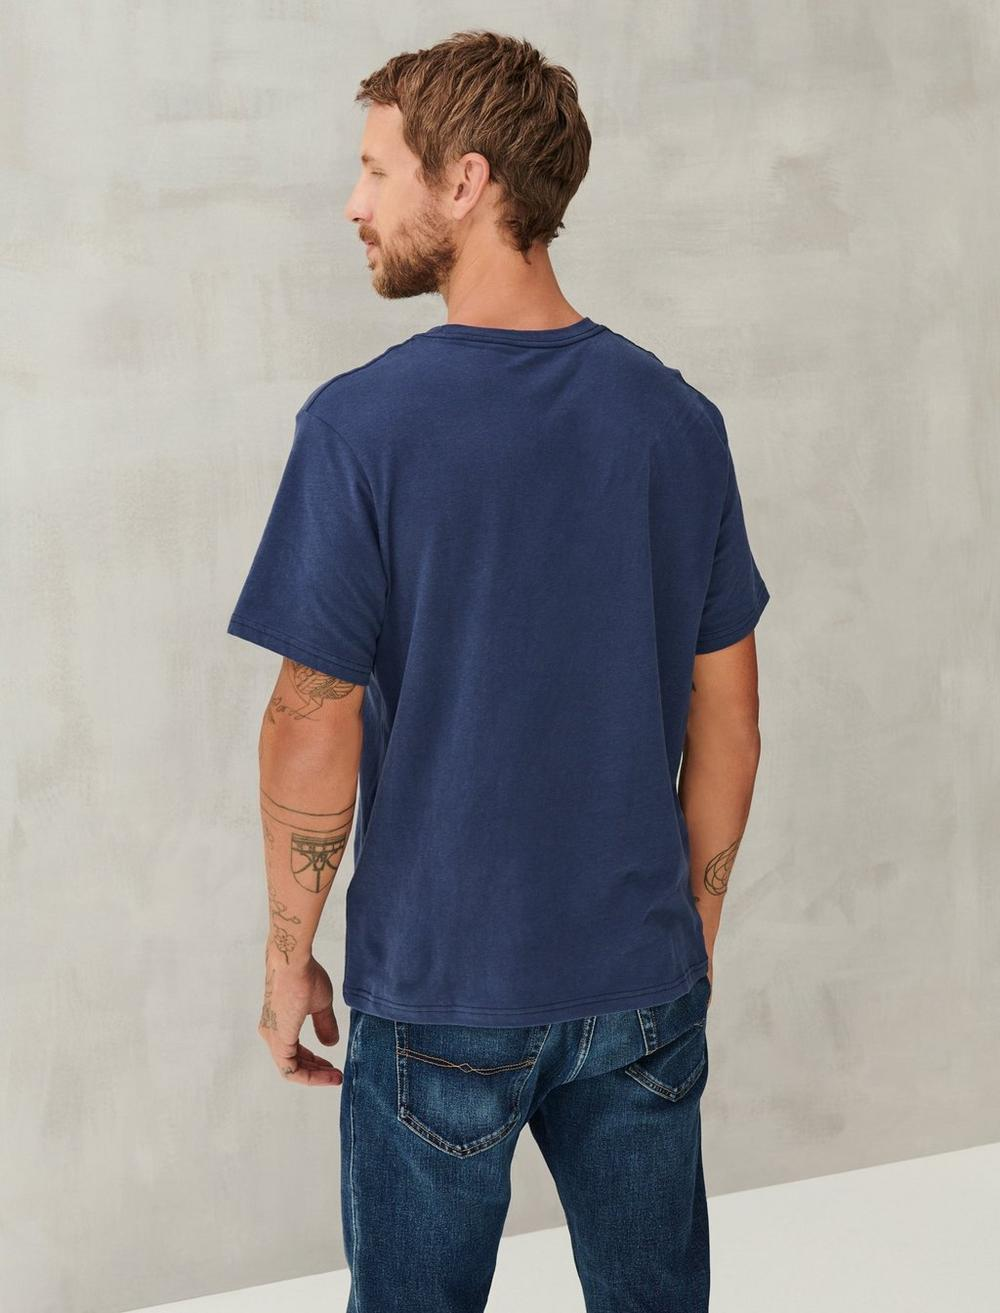 SUEDED JERSEY TEE, image 4